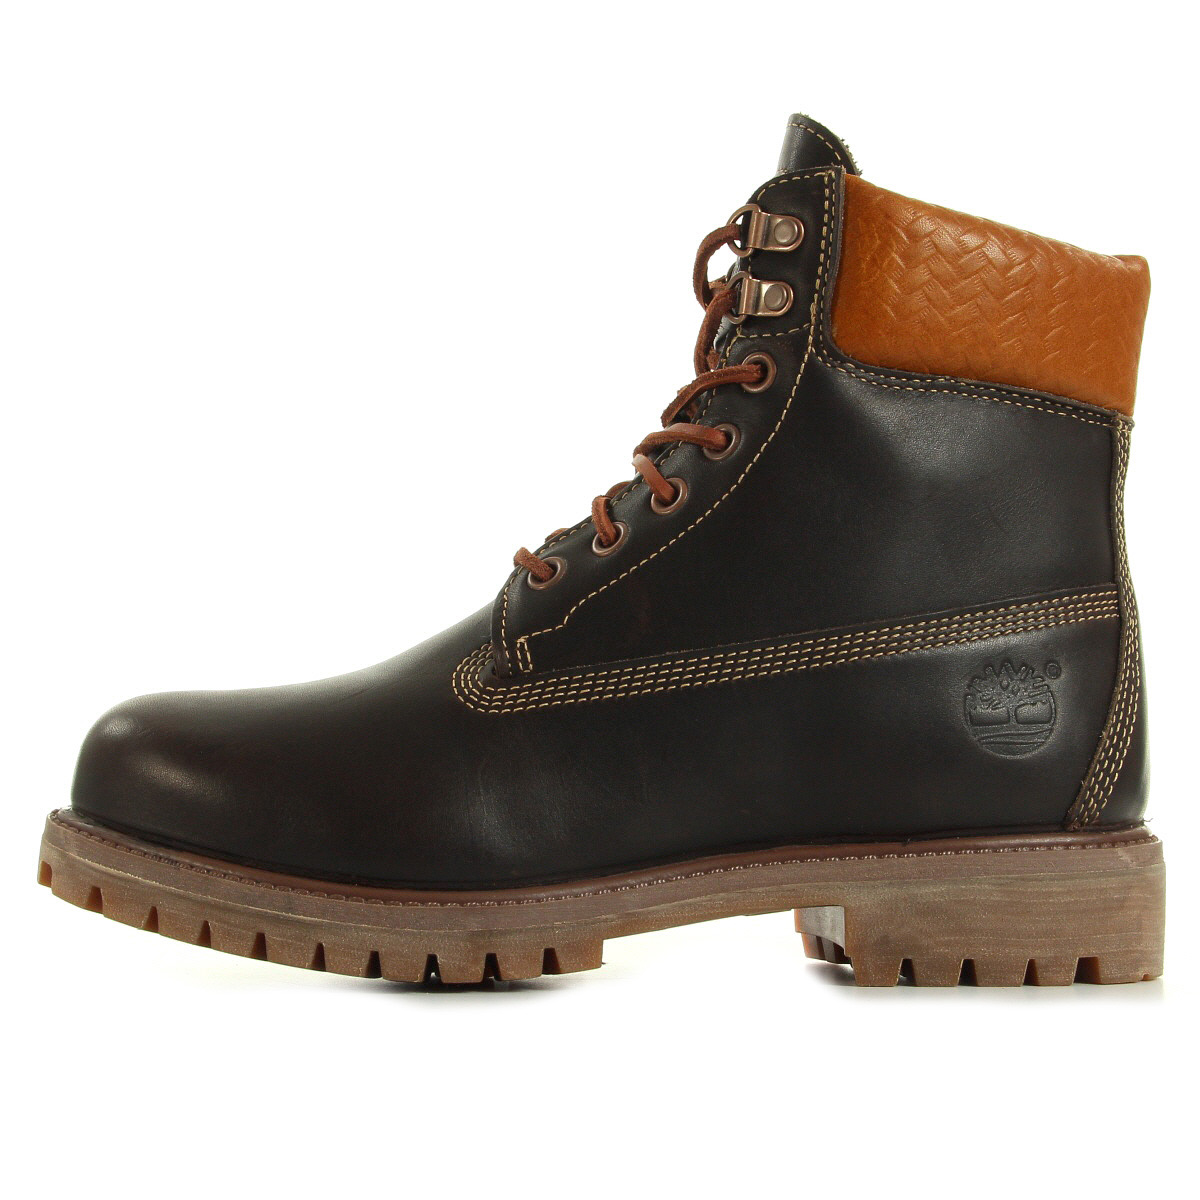 Timberland 6 IN Prem Bt C9634B, Boots homme